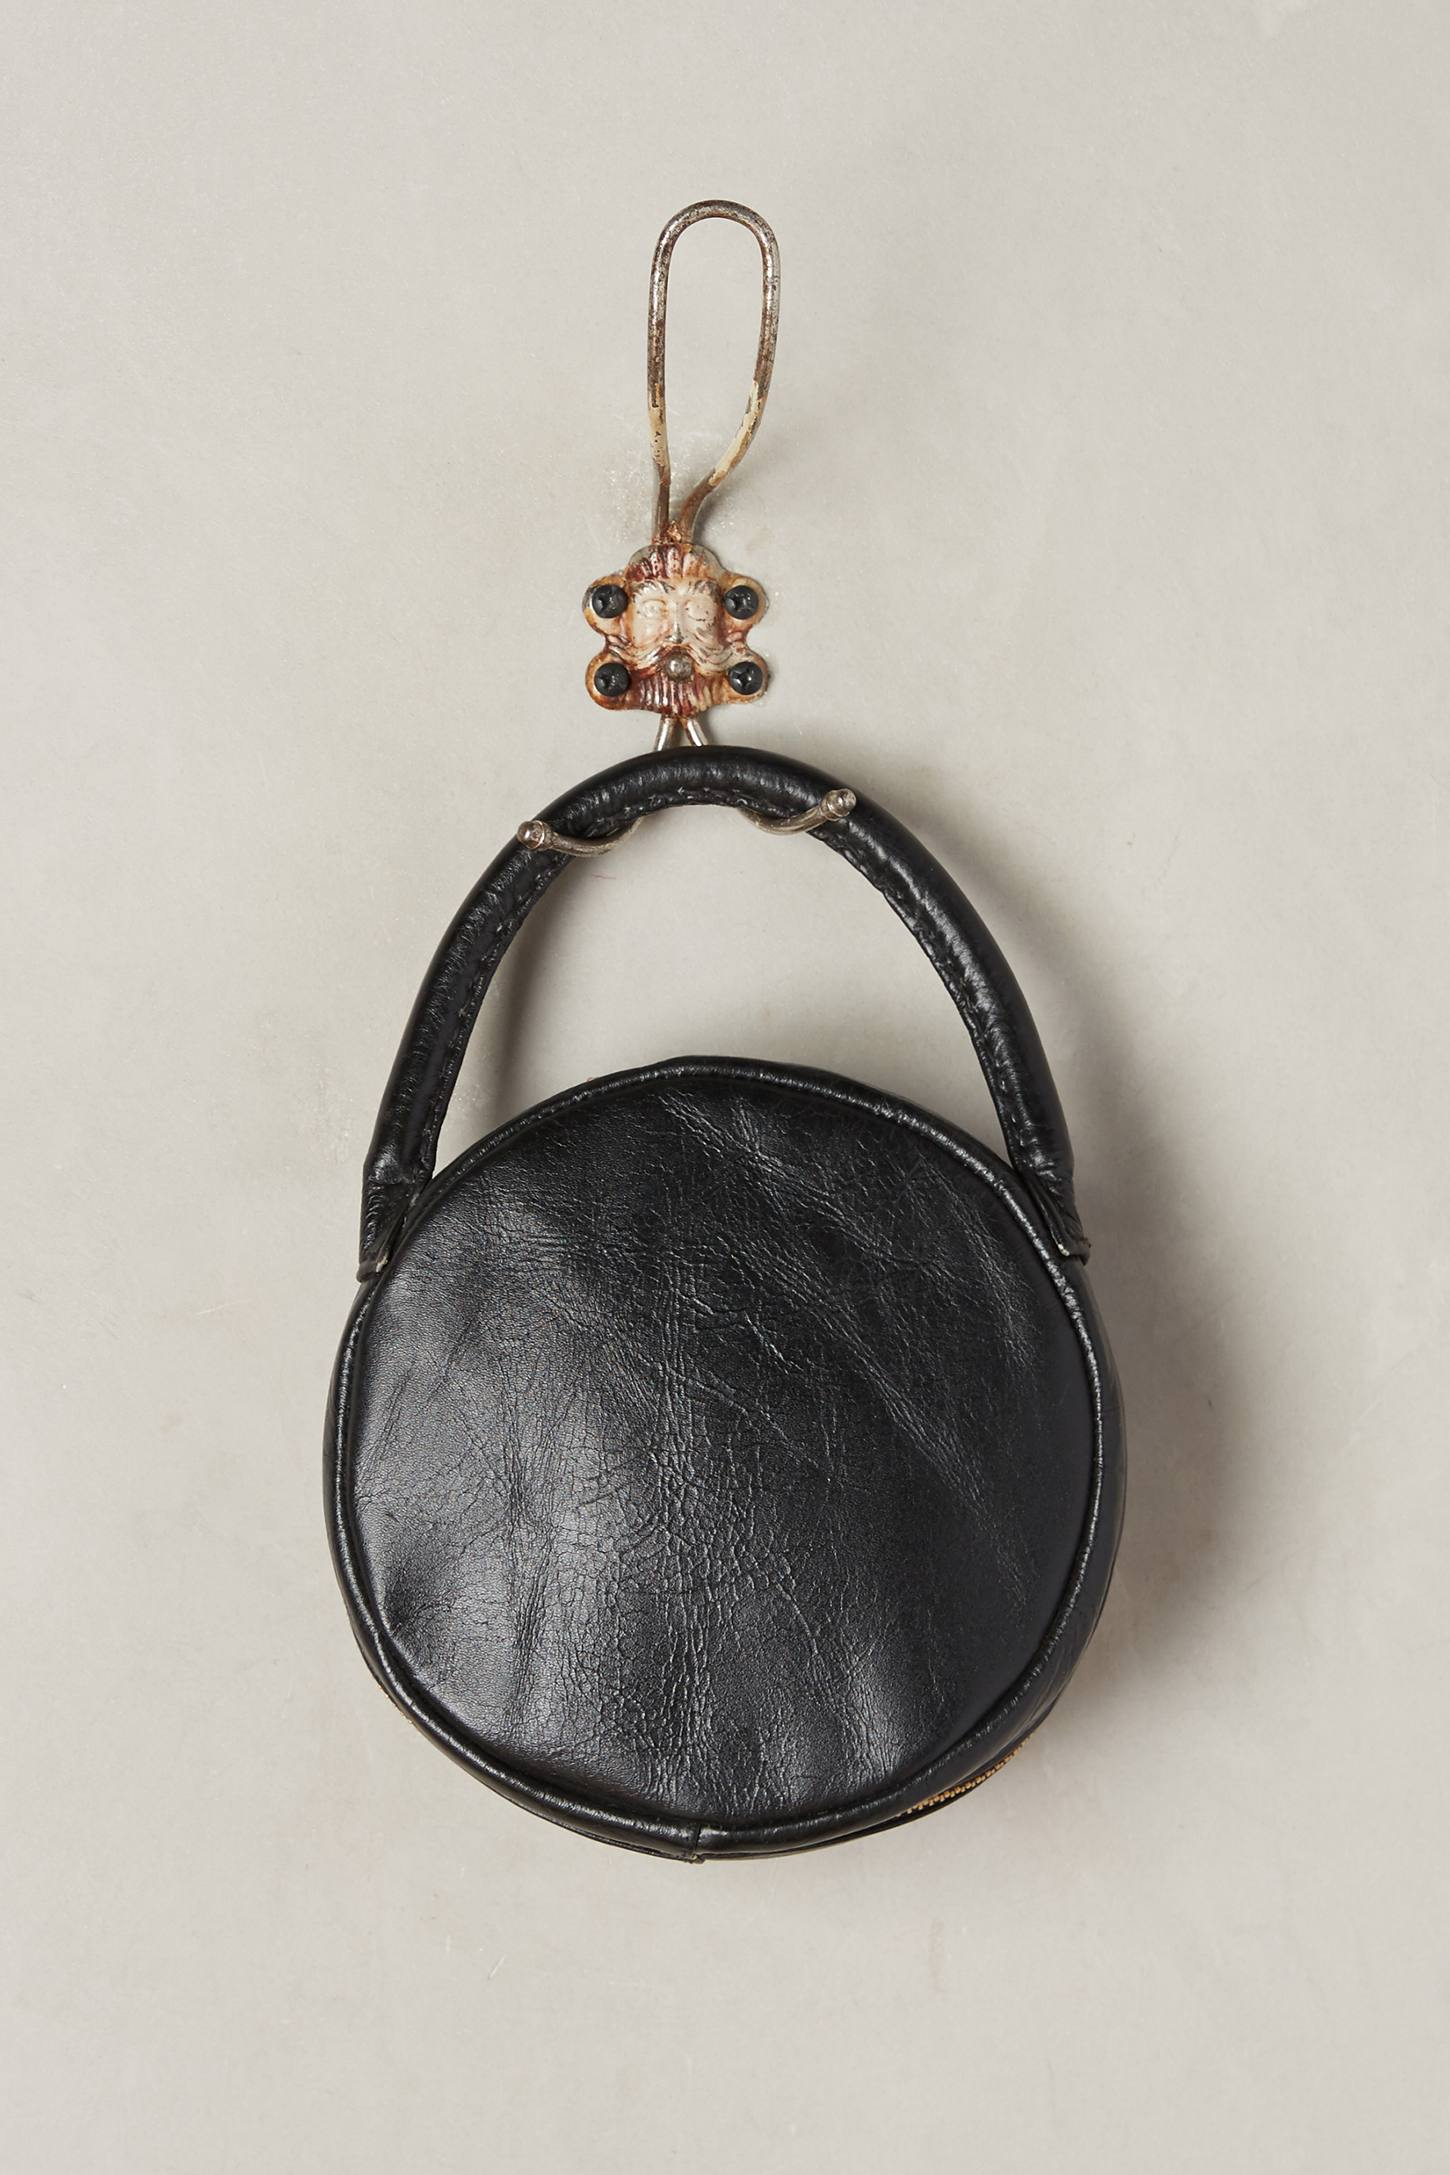 Slide View: 2: Embroidered Circle Bag